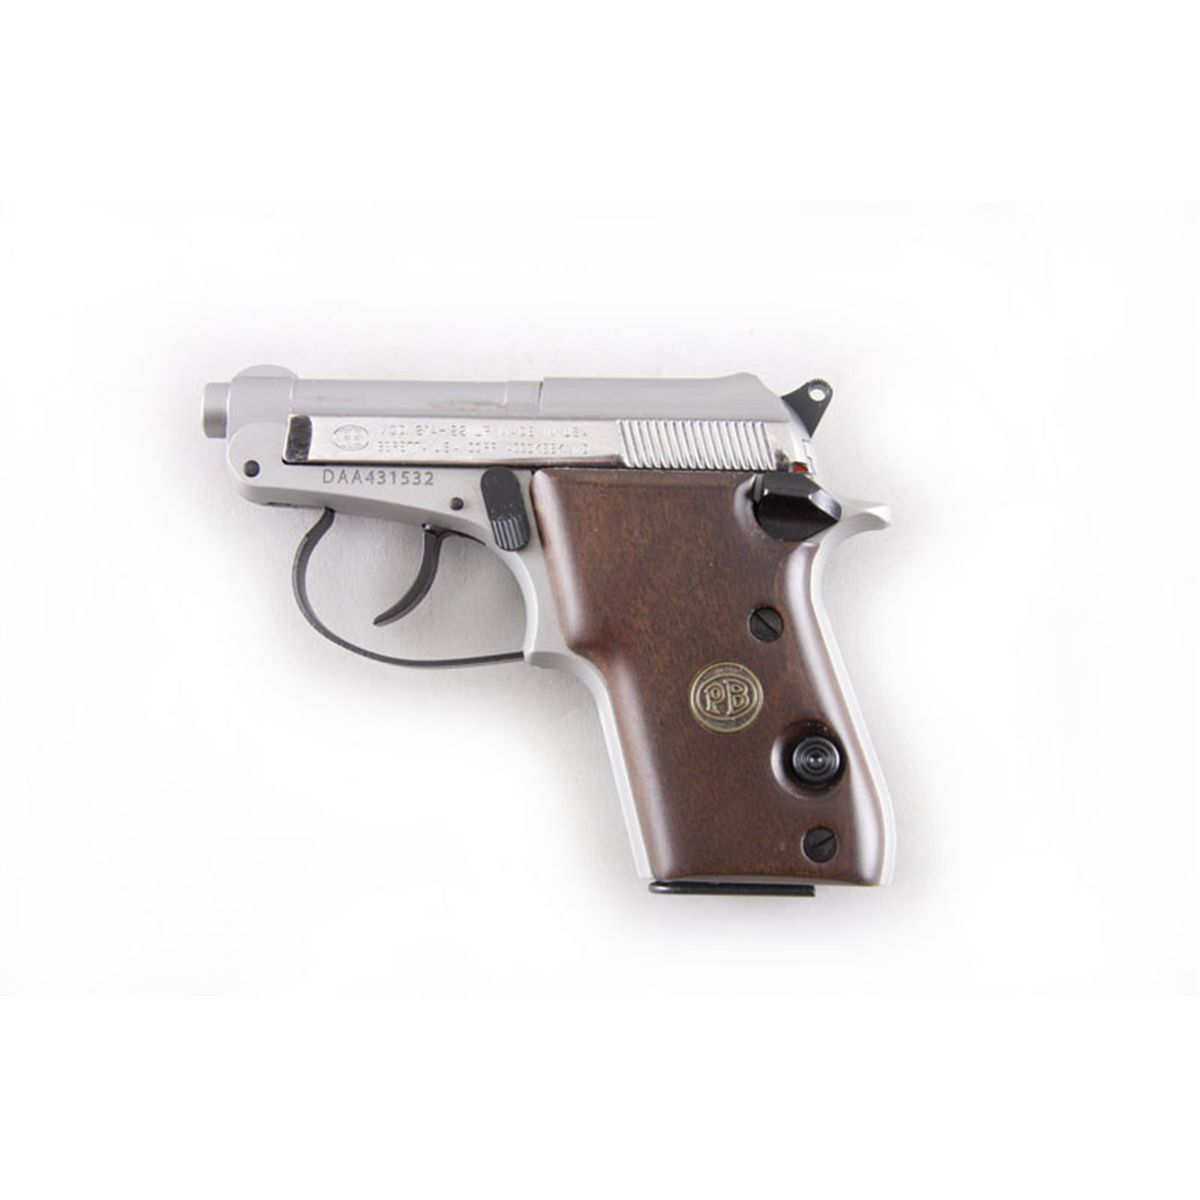 Beretta 21A Bobcat Cal  22LR SN:DAA431532 Double action semi